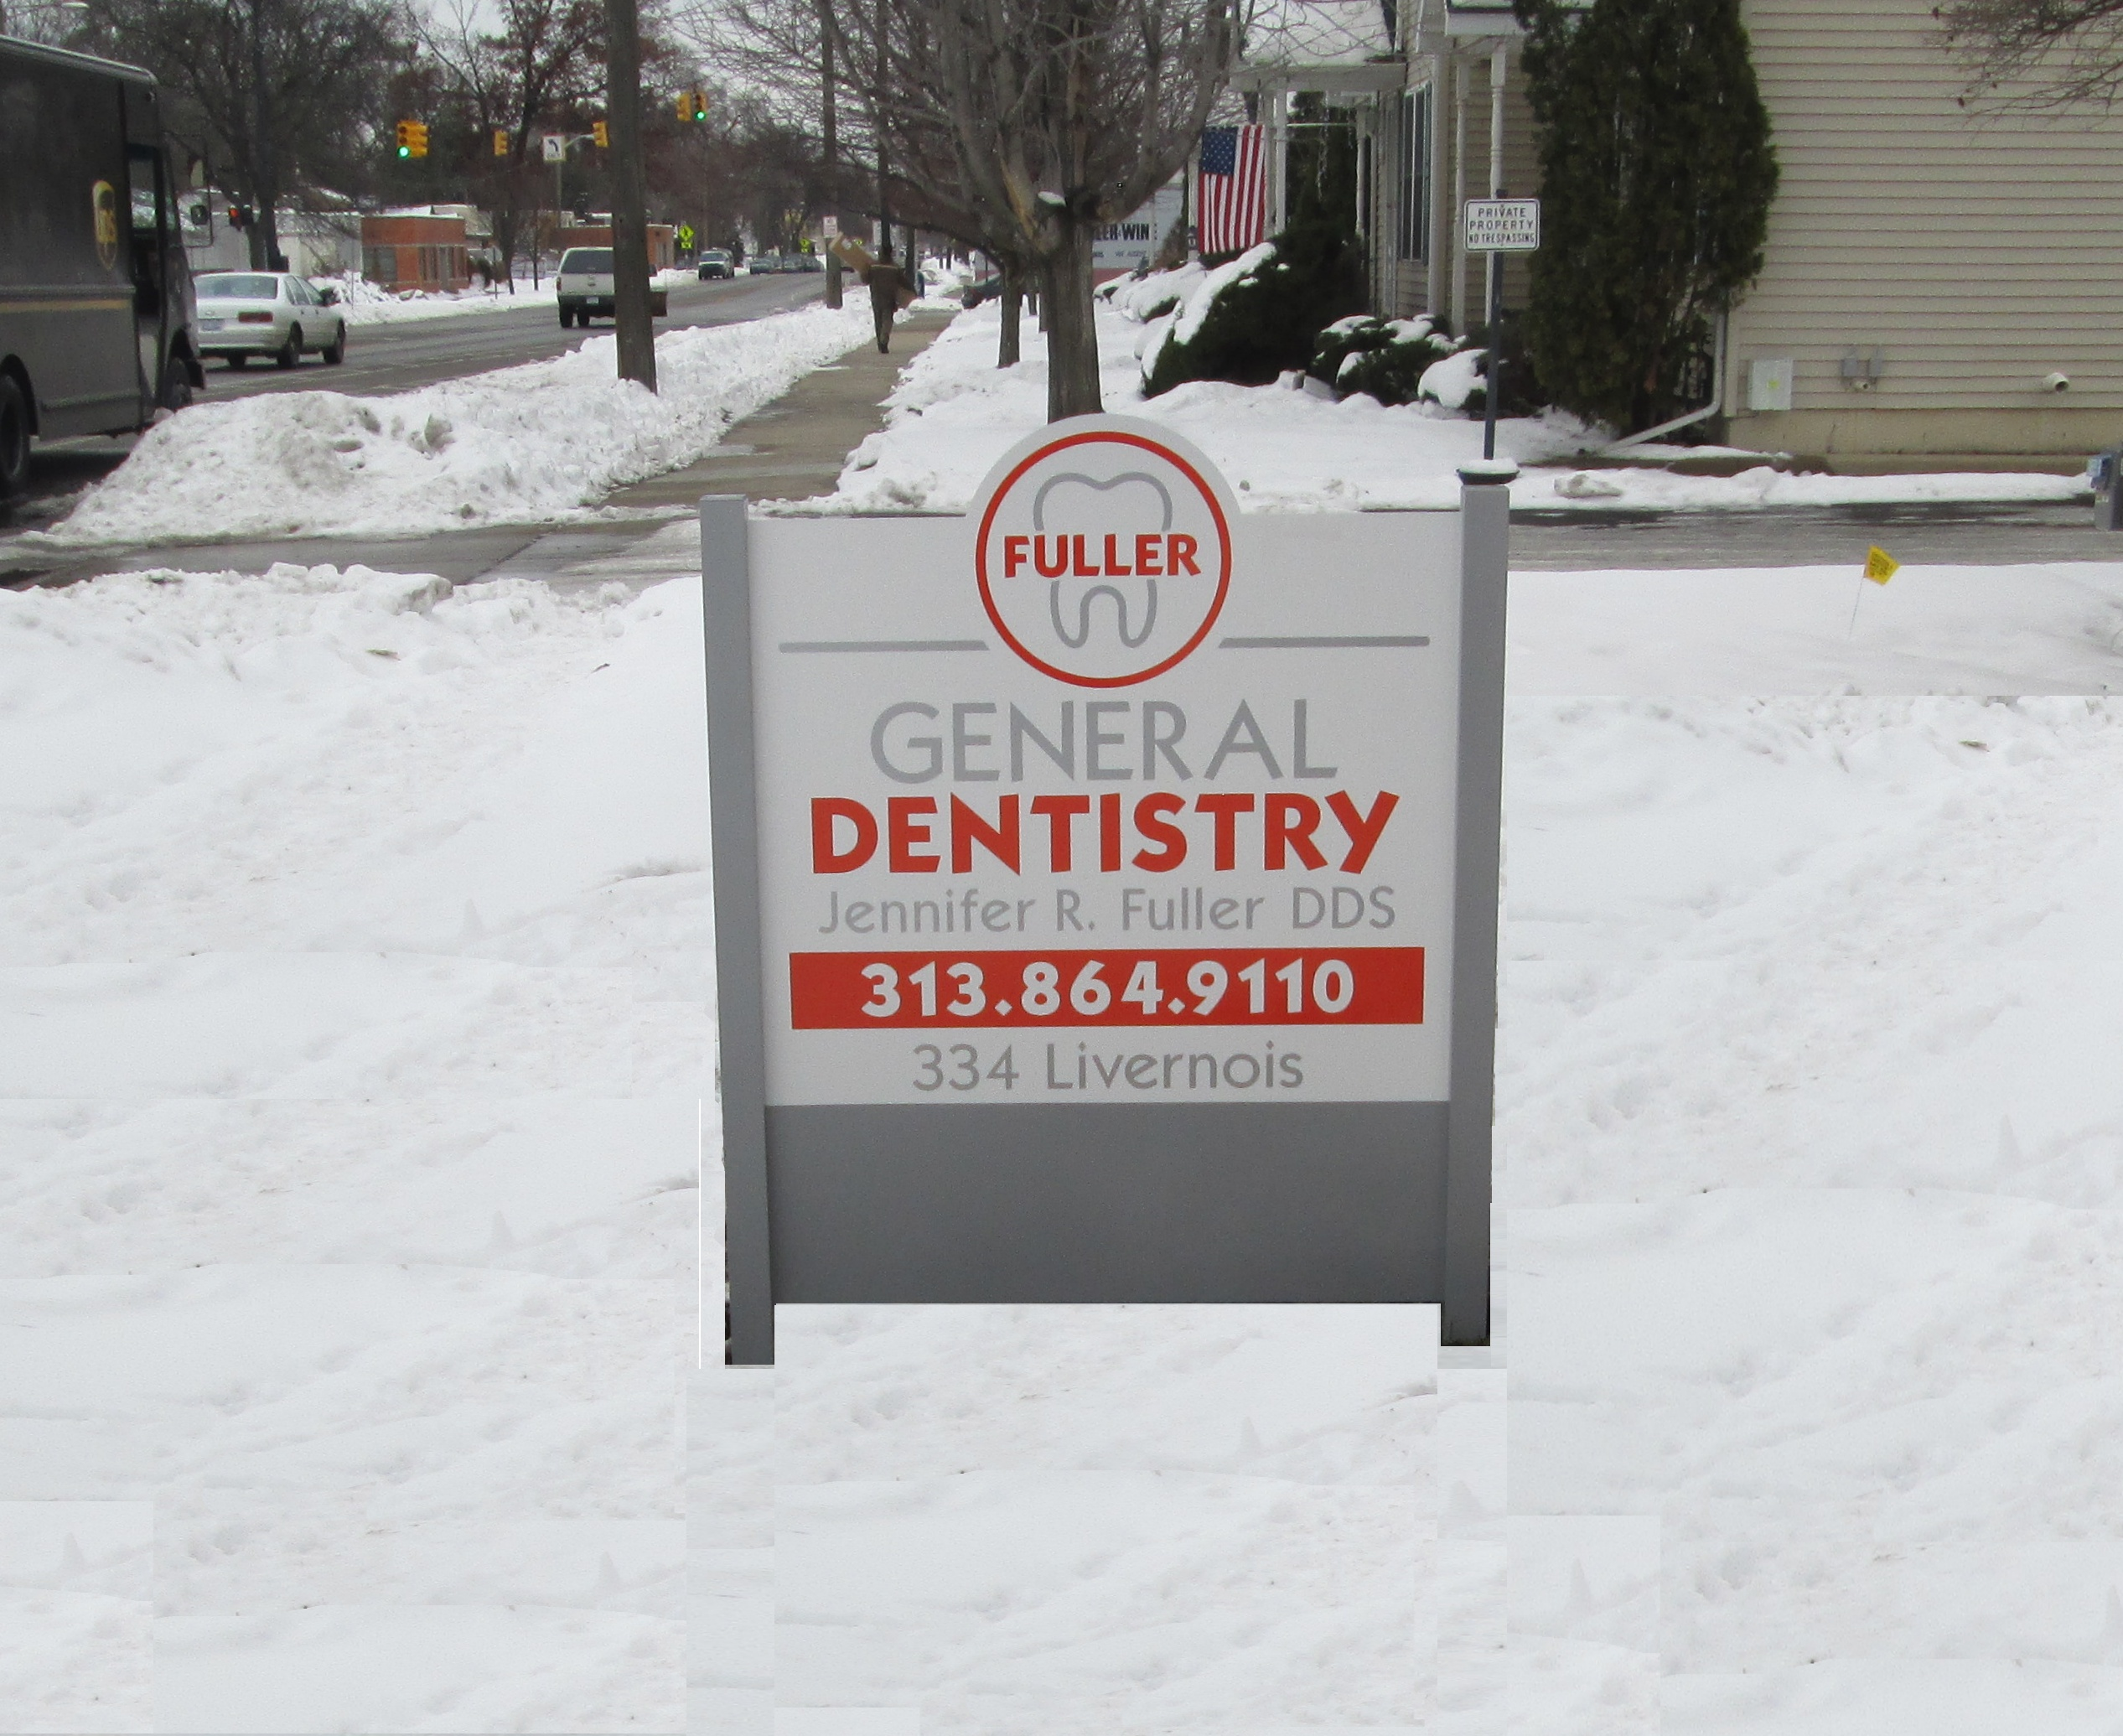 Fuller General Dentistry - Ferndale